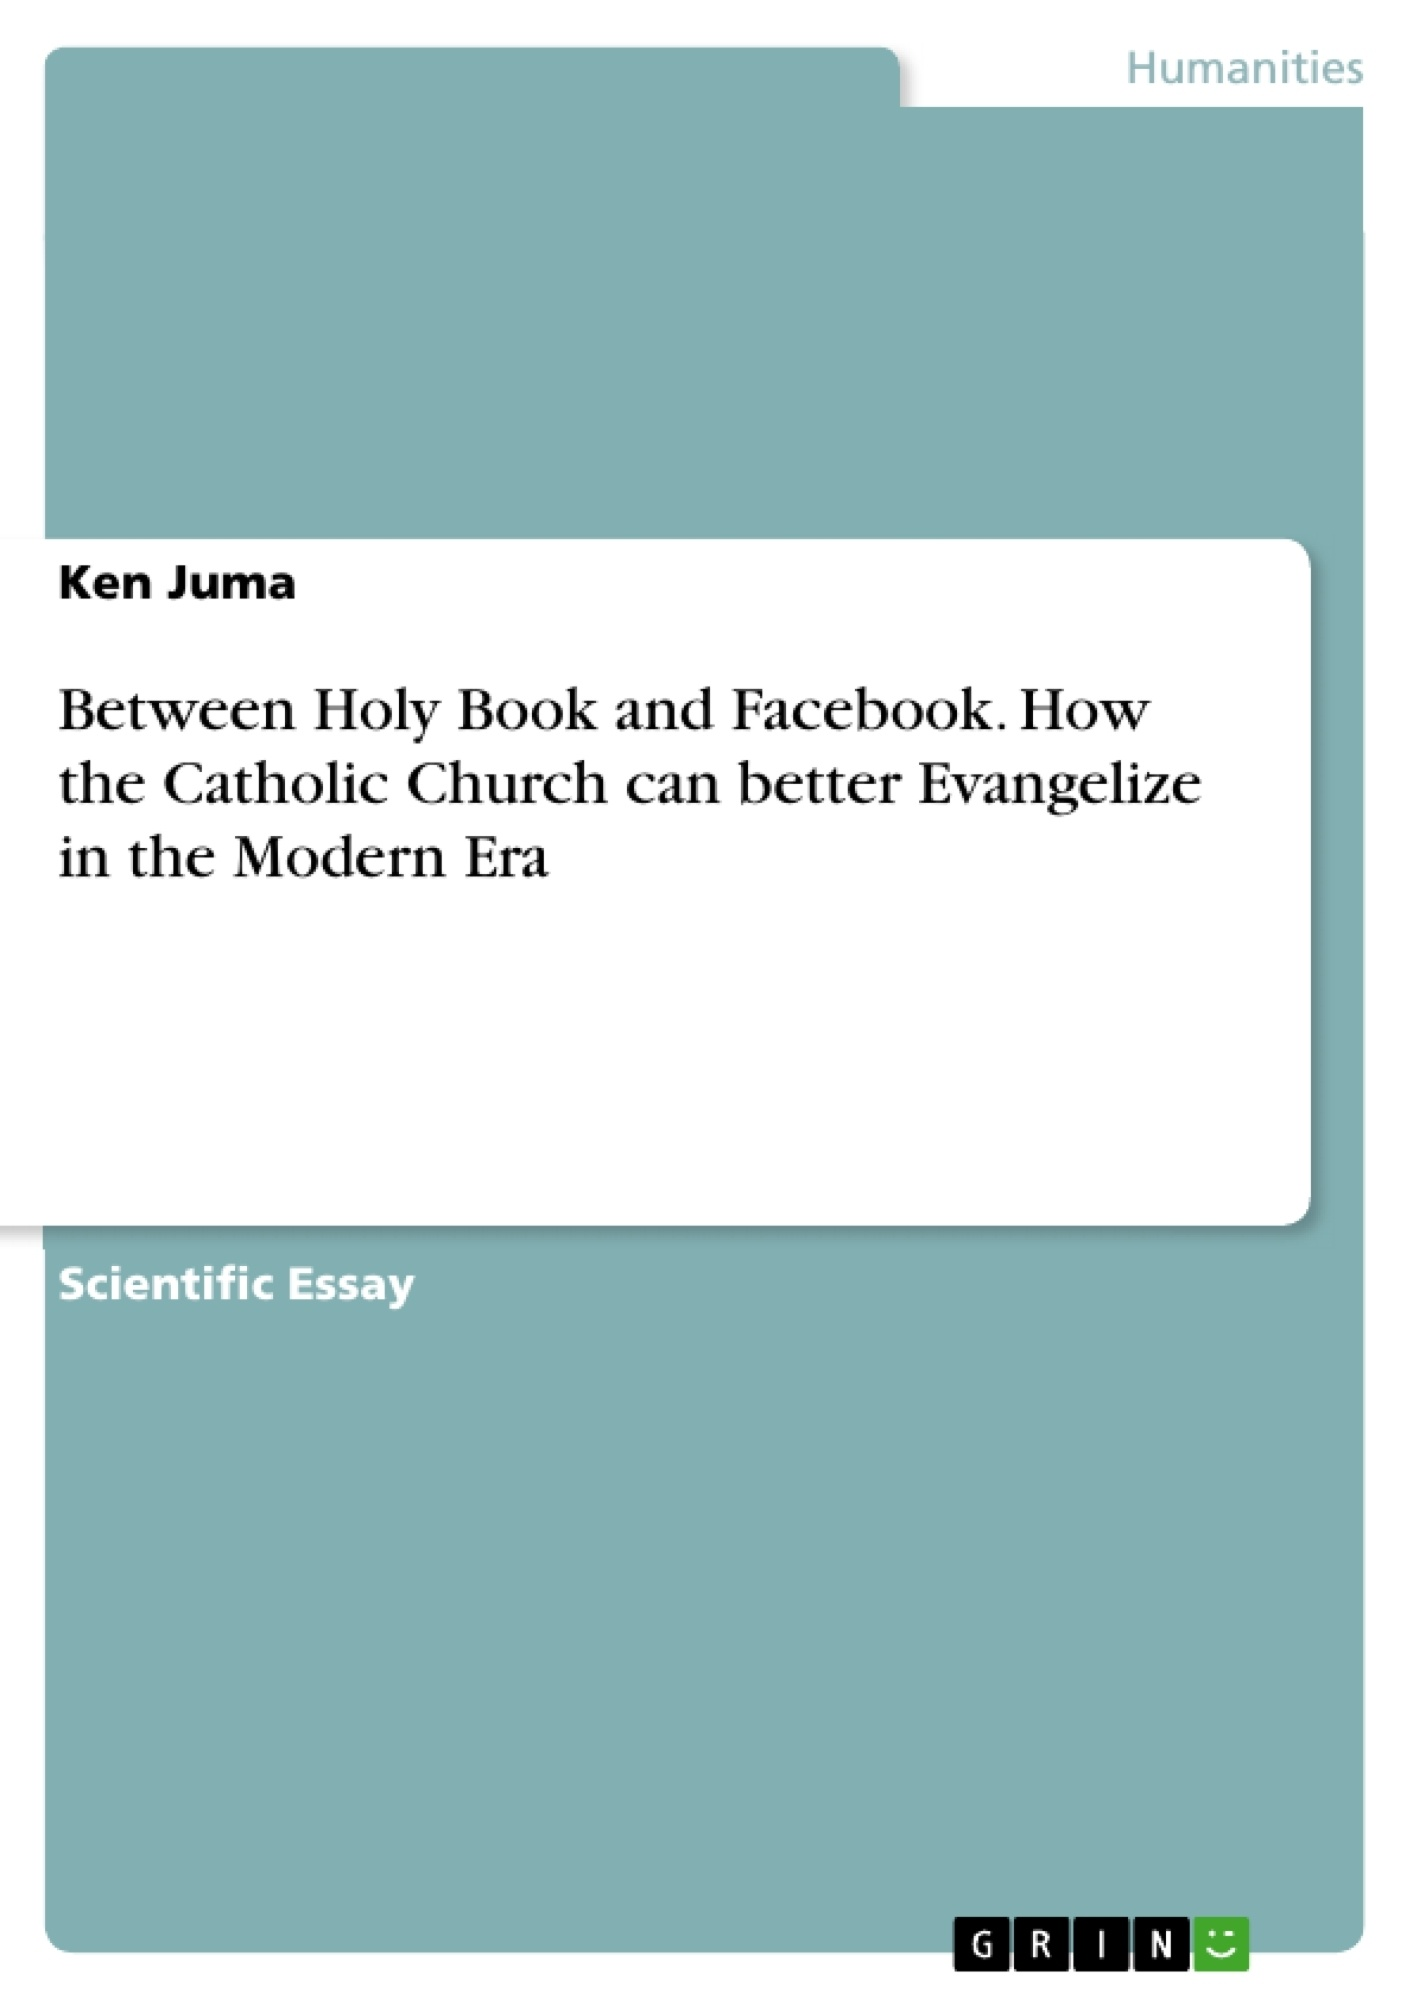 Title: Between Holy Book and Facebook. How the Catholic Church can better Evangelize in the Modern Era